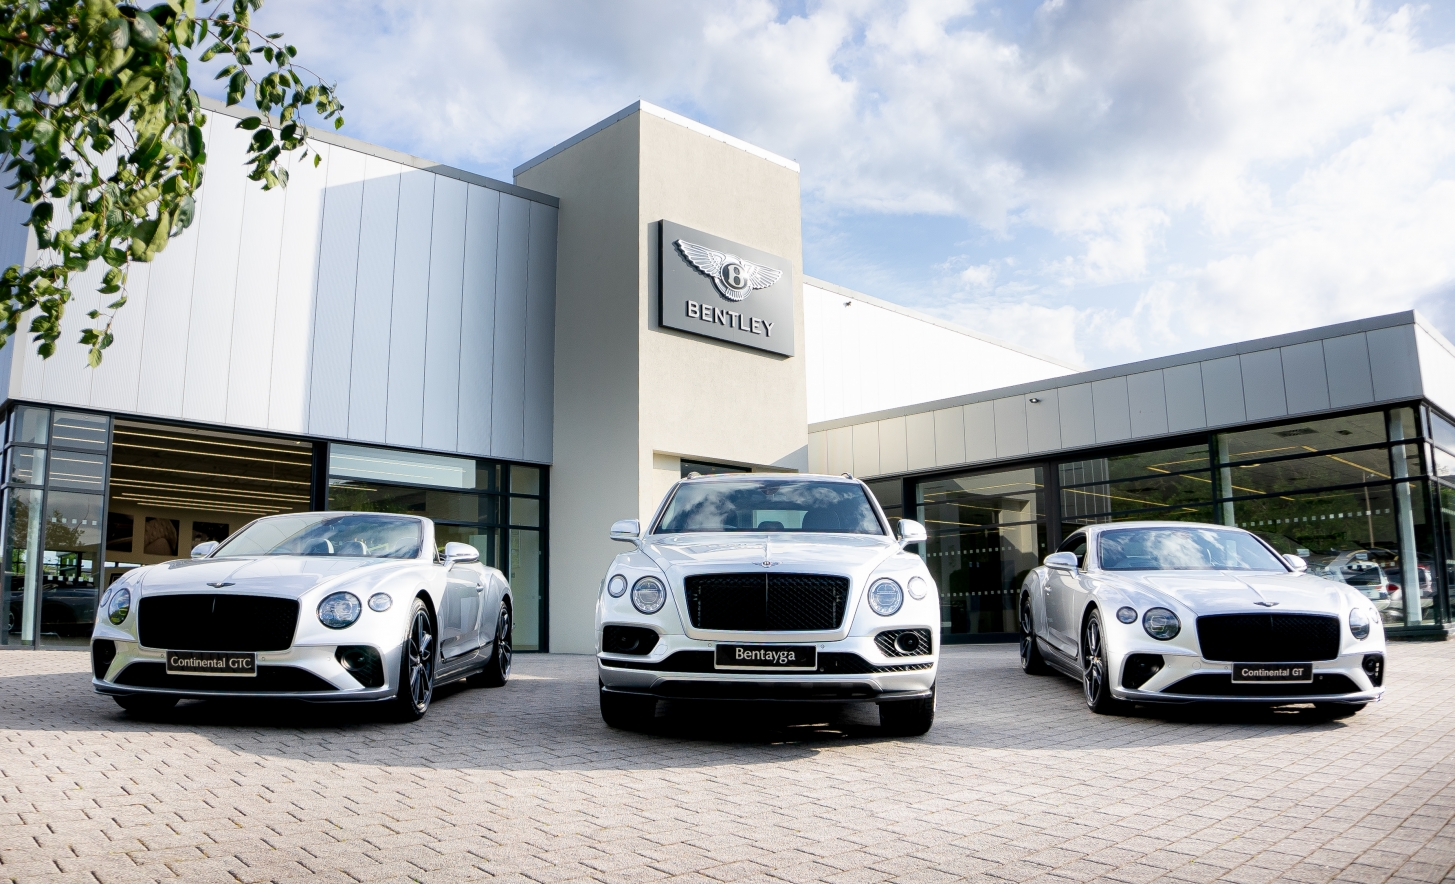 Sale Sharks | BENTLEY MANCHESTER 25 YEARS – THE SILVER SISTERS